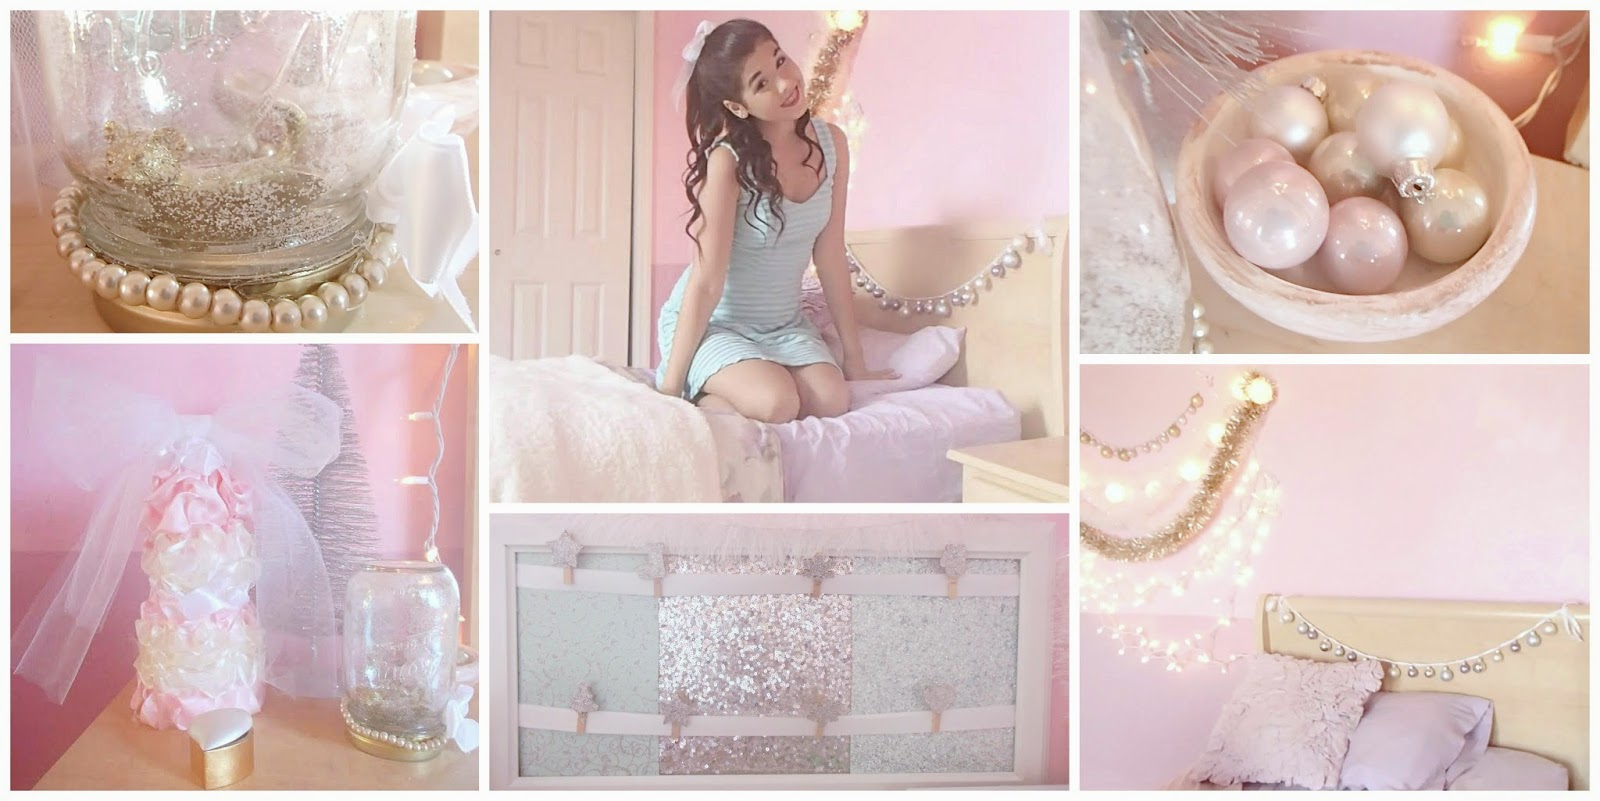 Beautyybychloe diy holiday room decor a girly twist for Girly bedroom decor